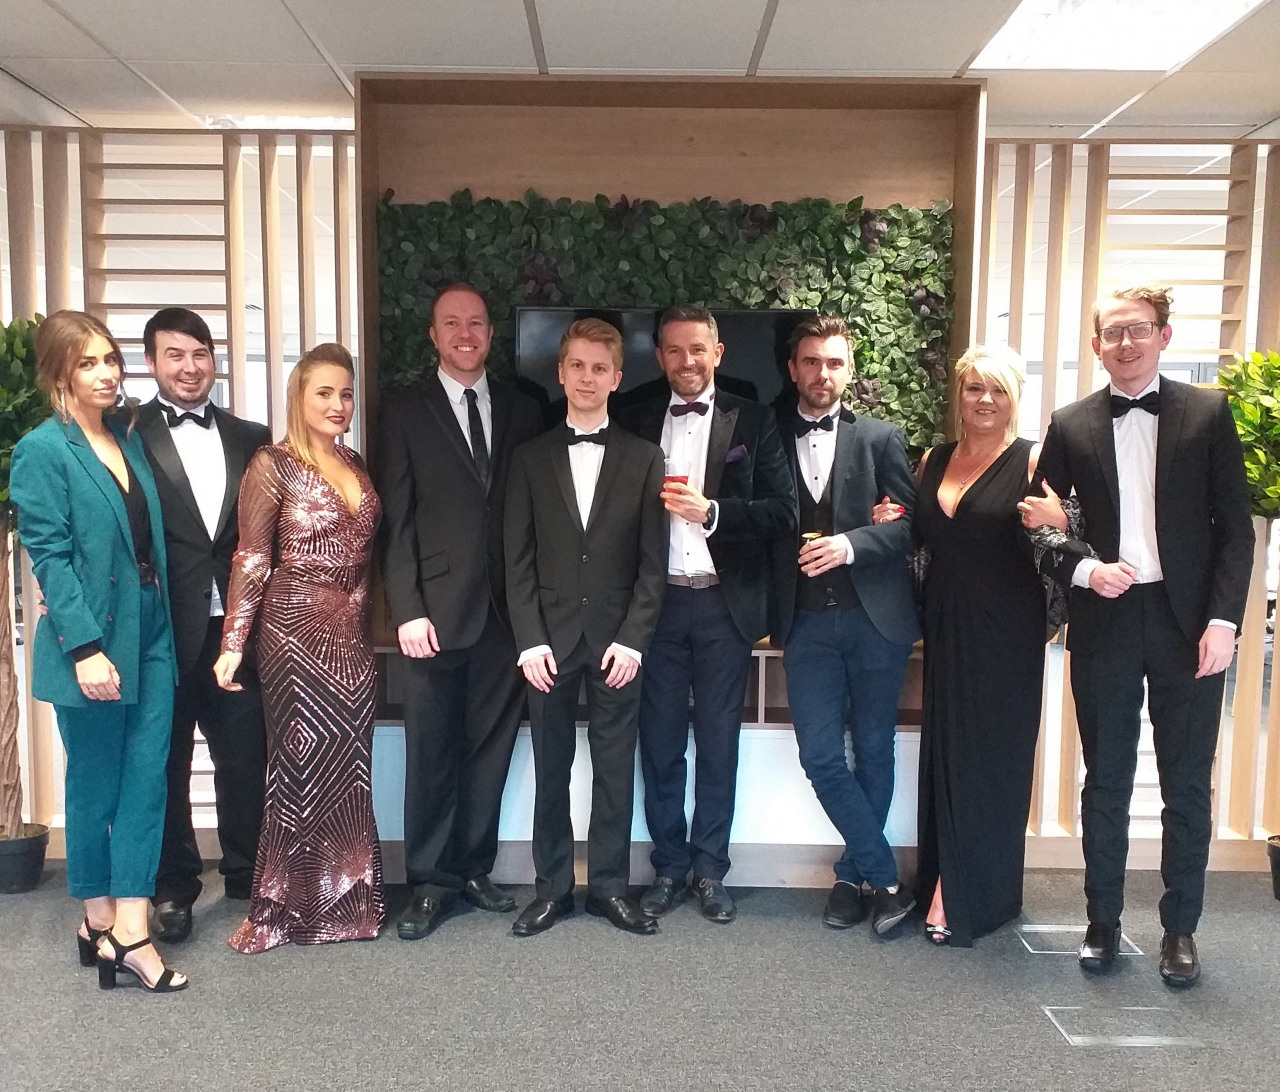 Salesfire staff suited and booted for the North East Business Awards